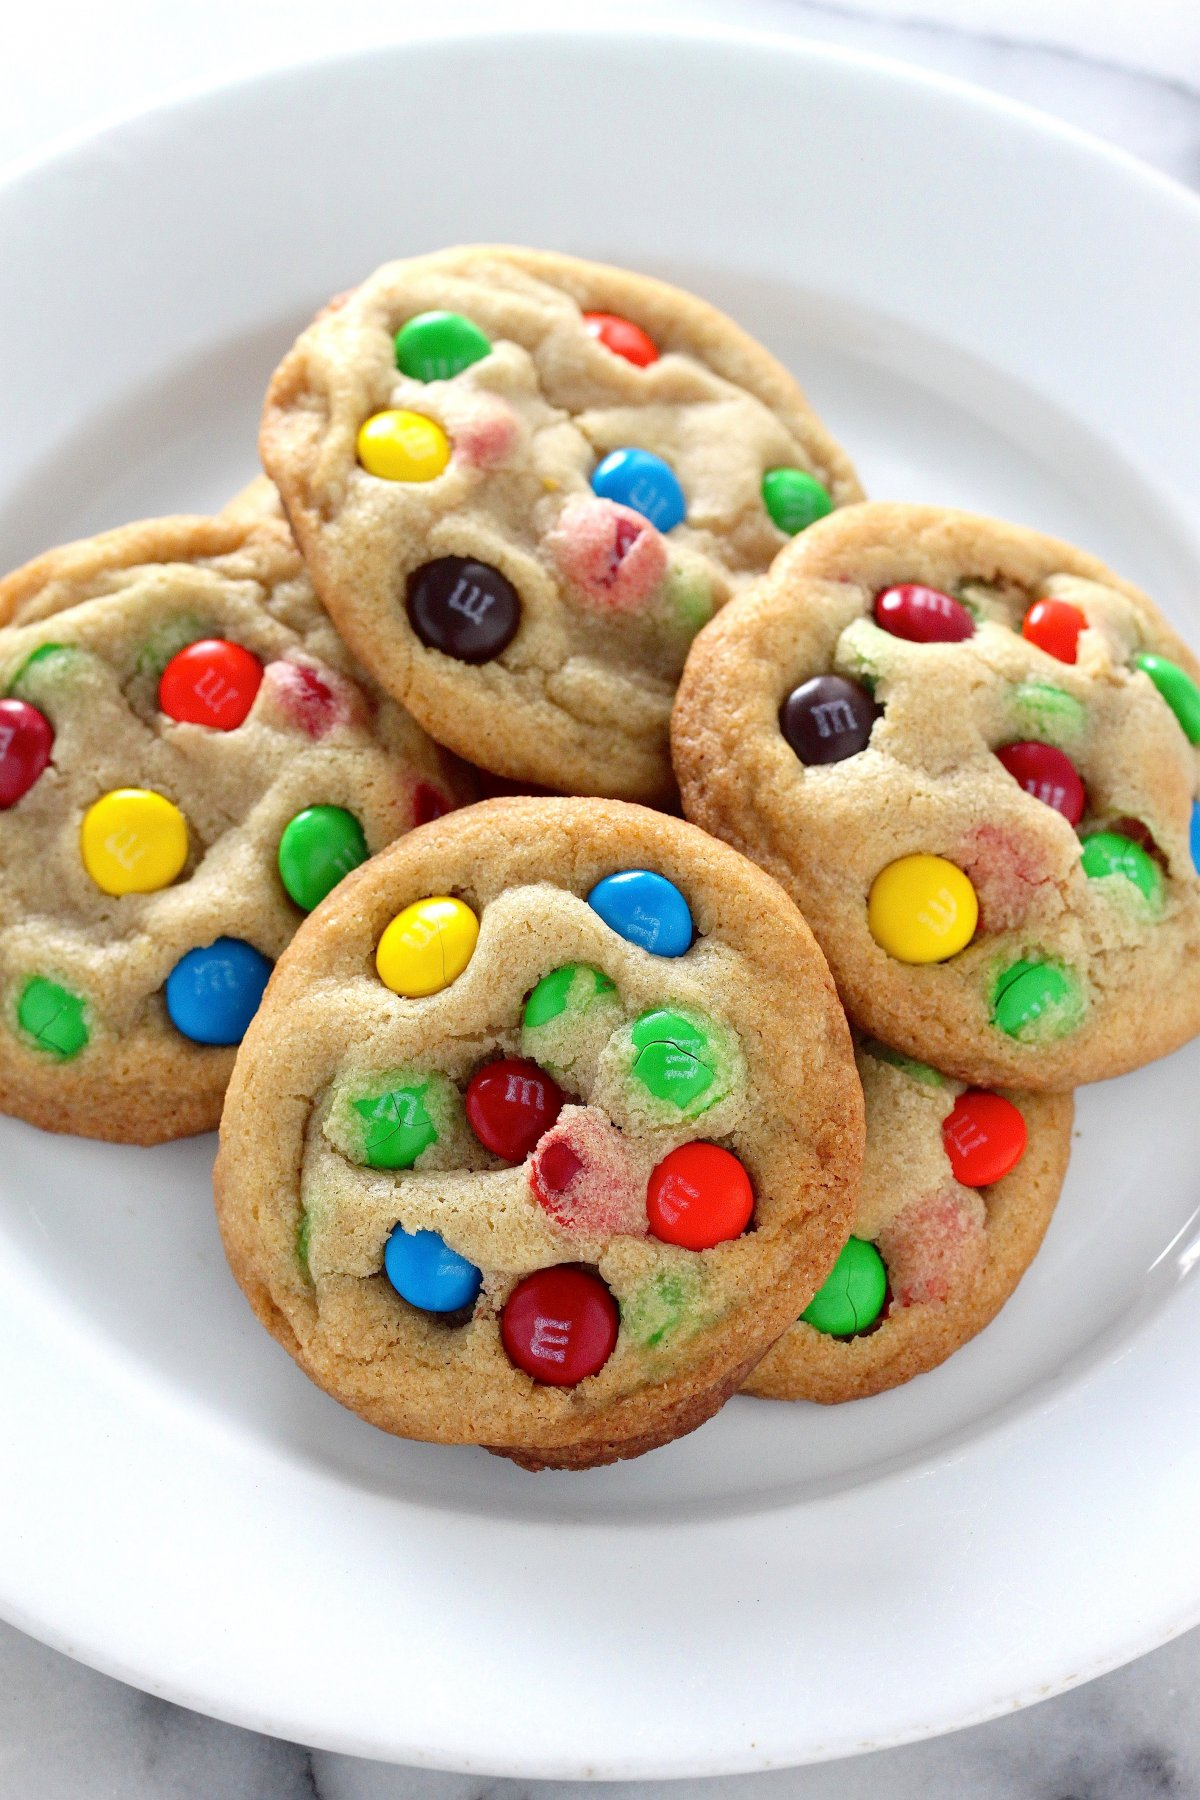 Crunchy Cookies Recipes - Yummly